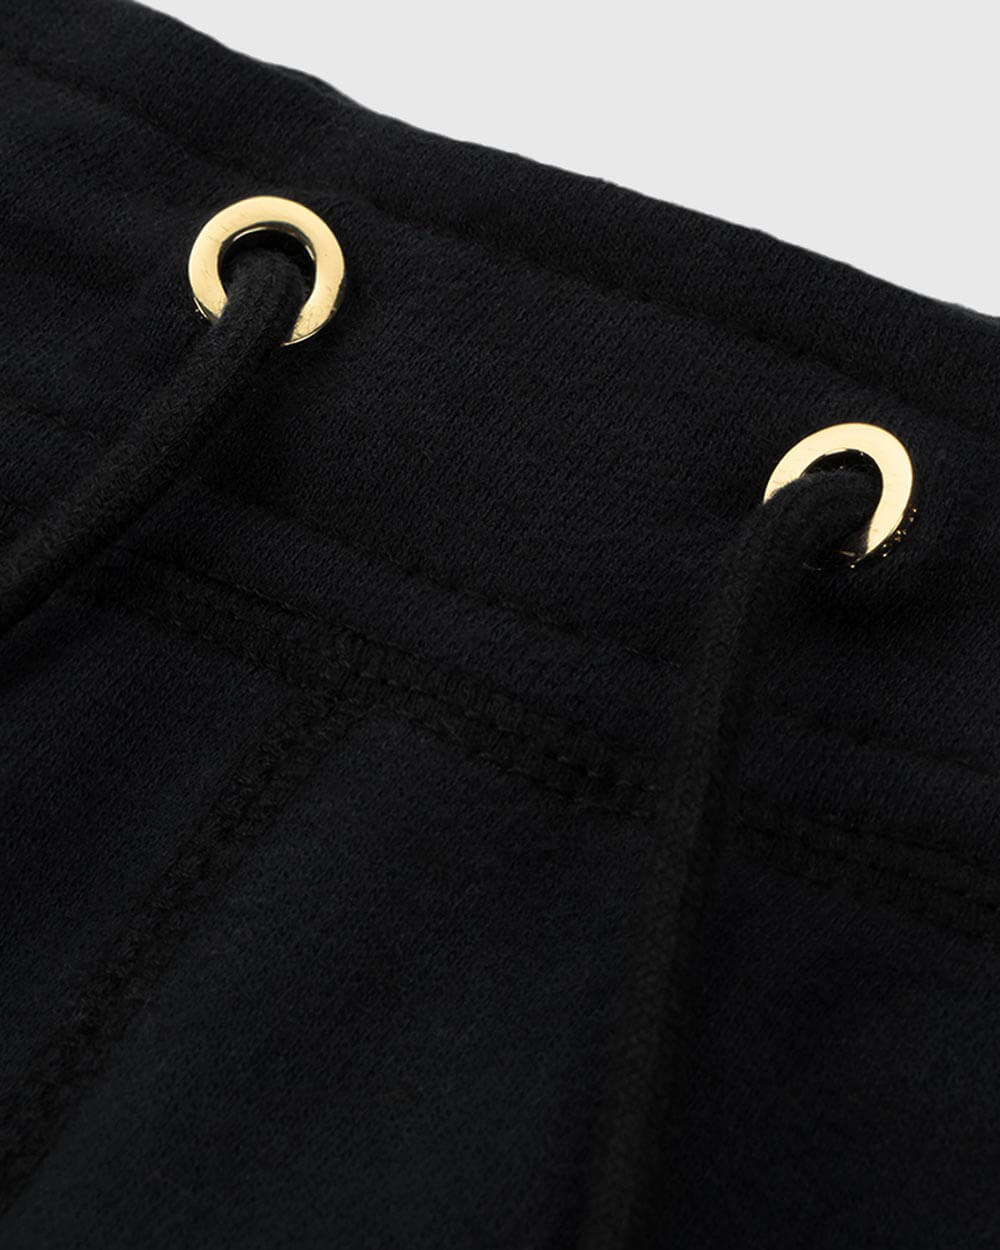 MID-WEIGHT FRENCH TERRY SWEATPANT - BLACK